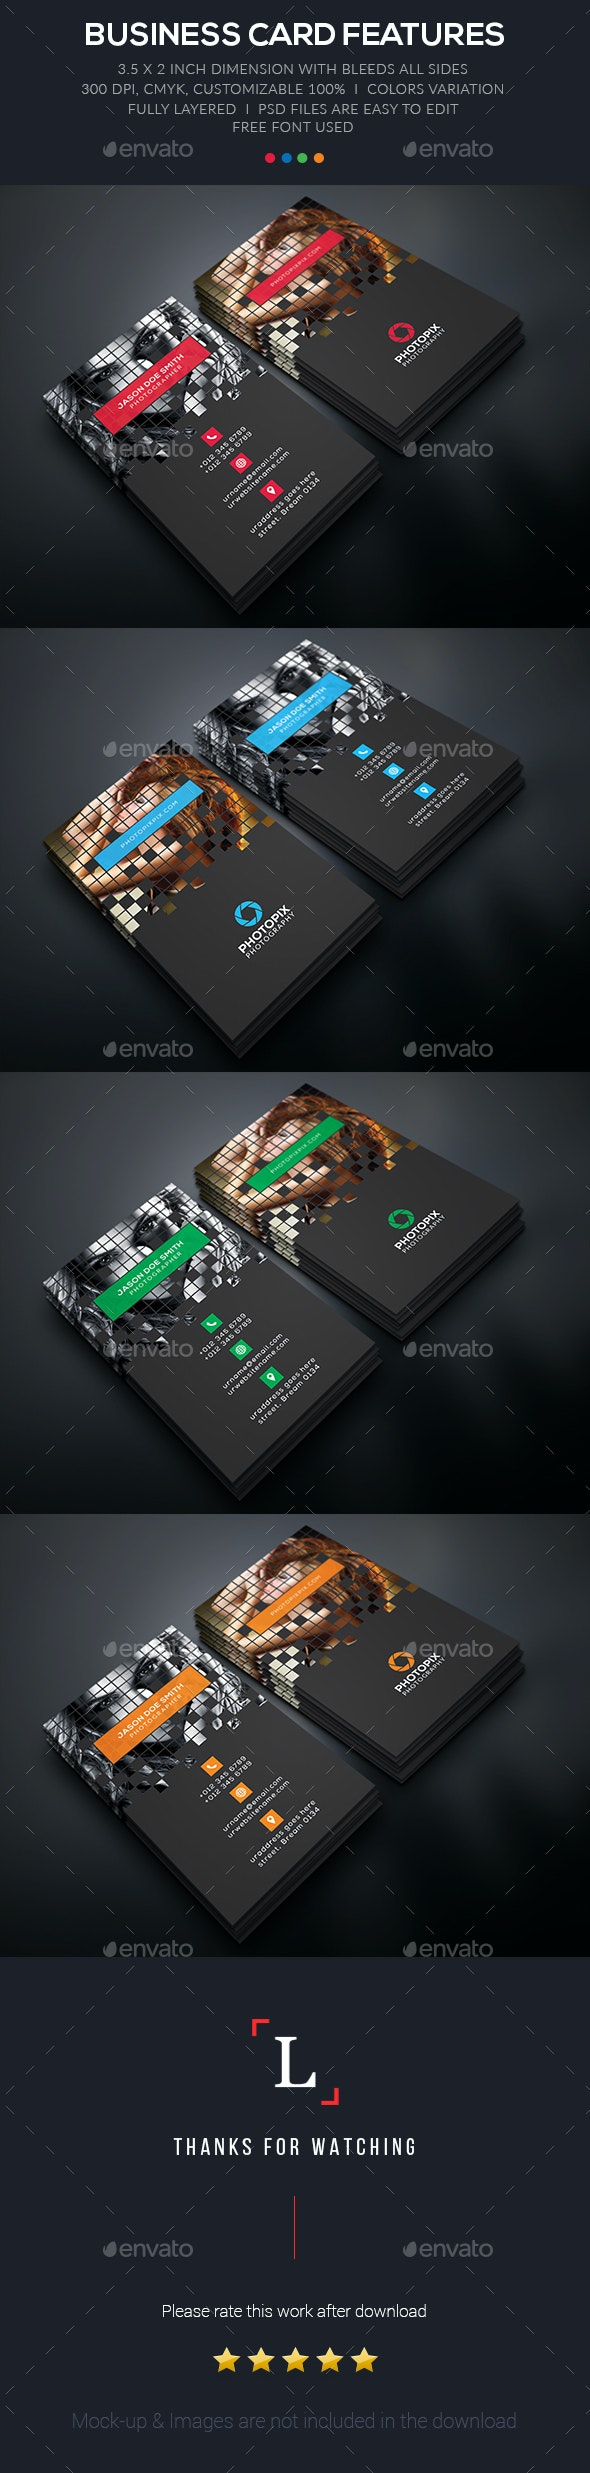 Pixel Photography Business Card - Business Cards Print Templates